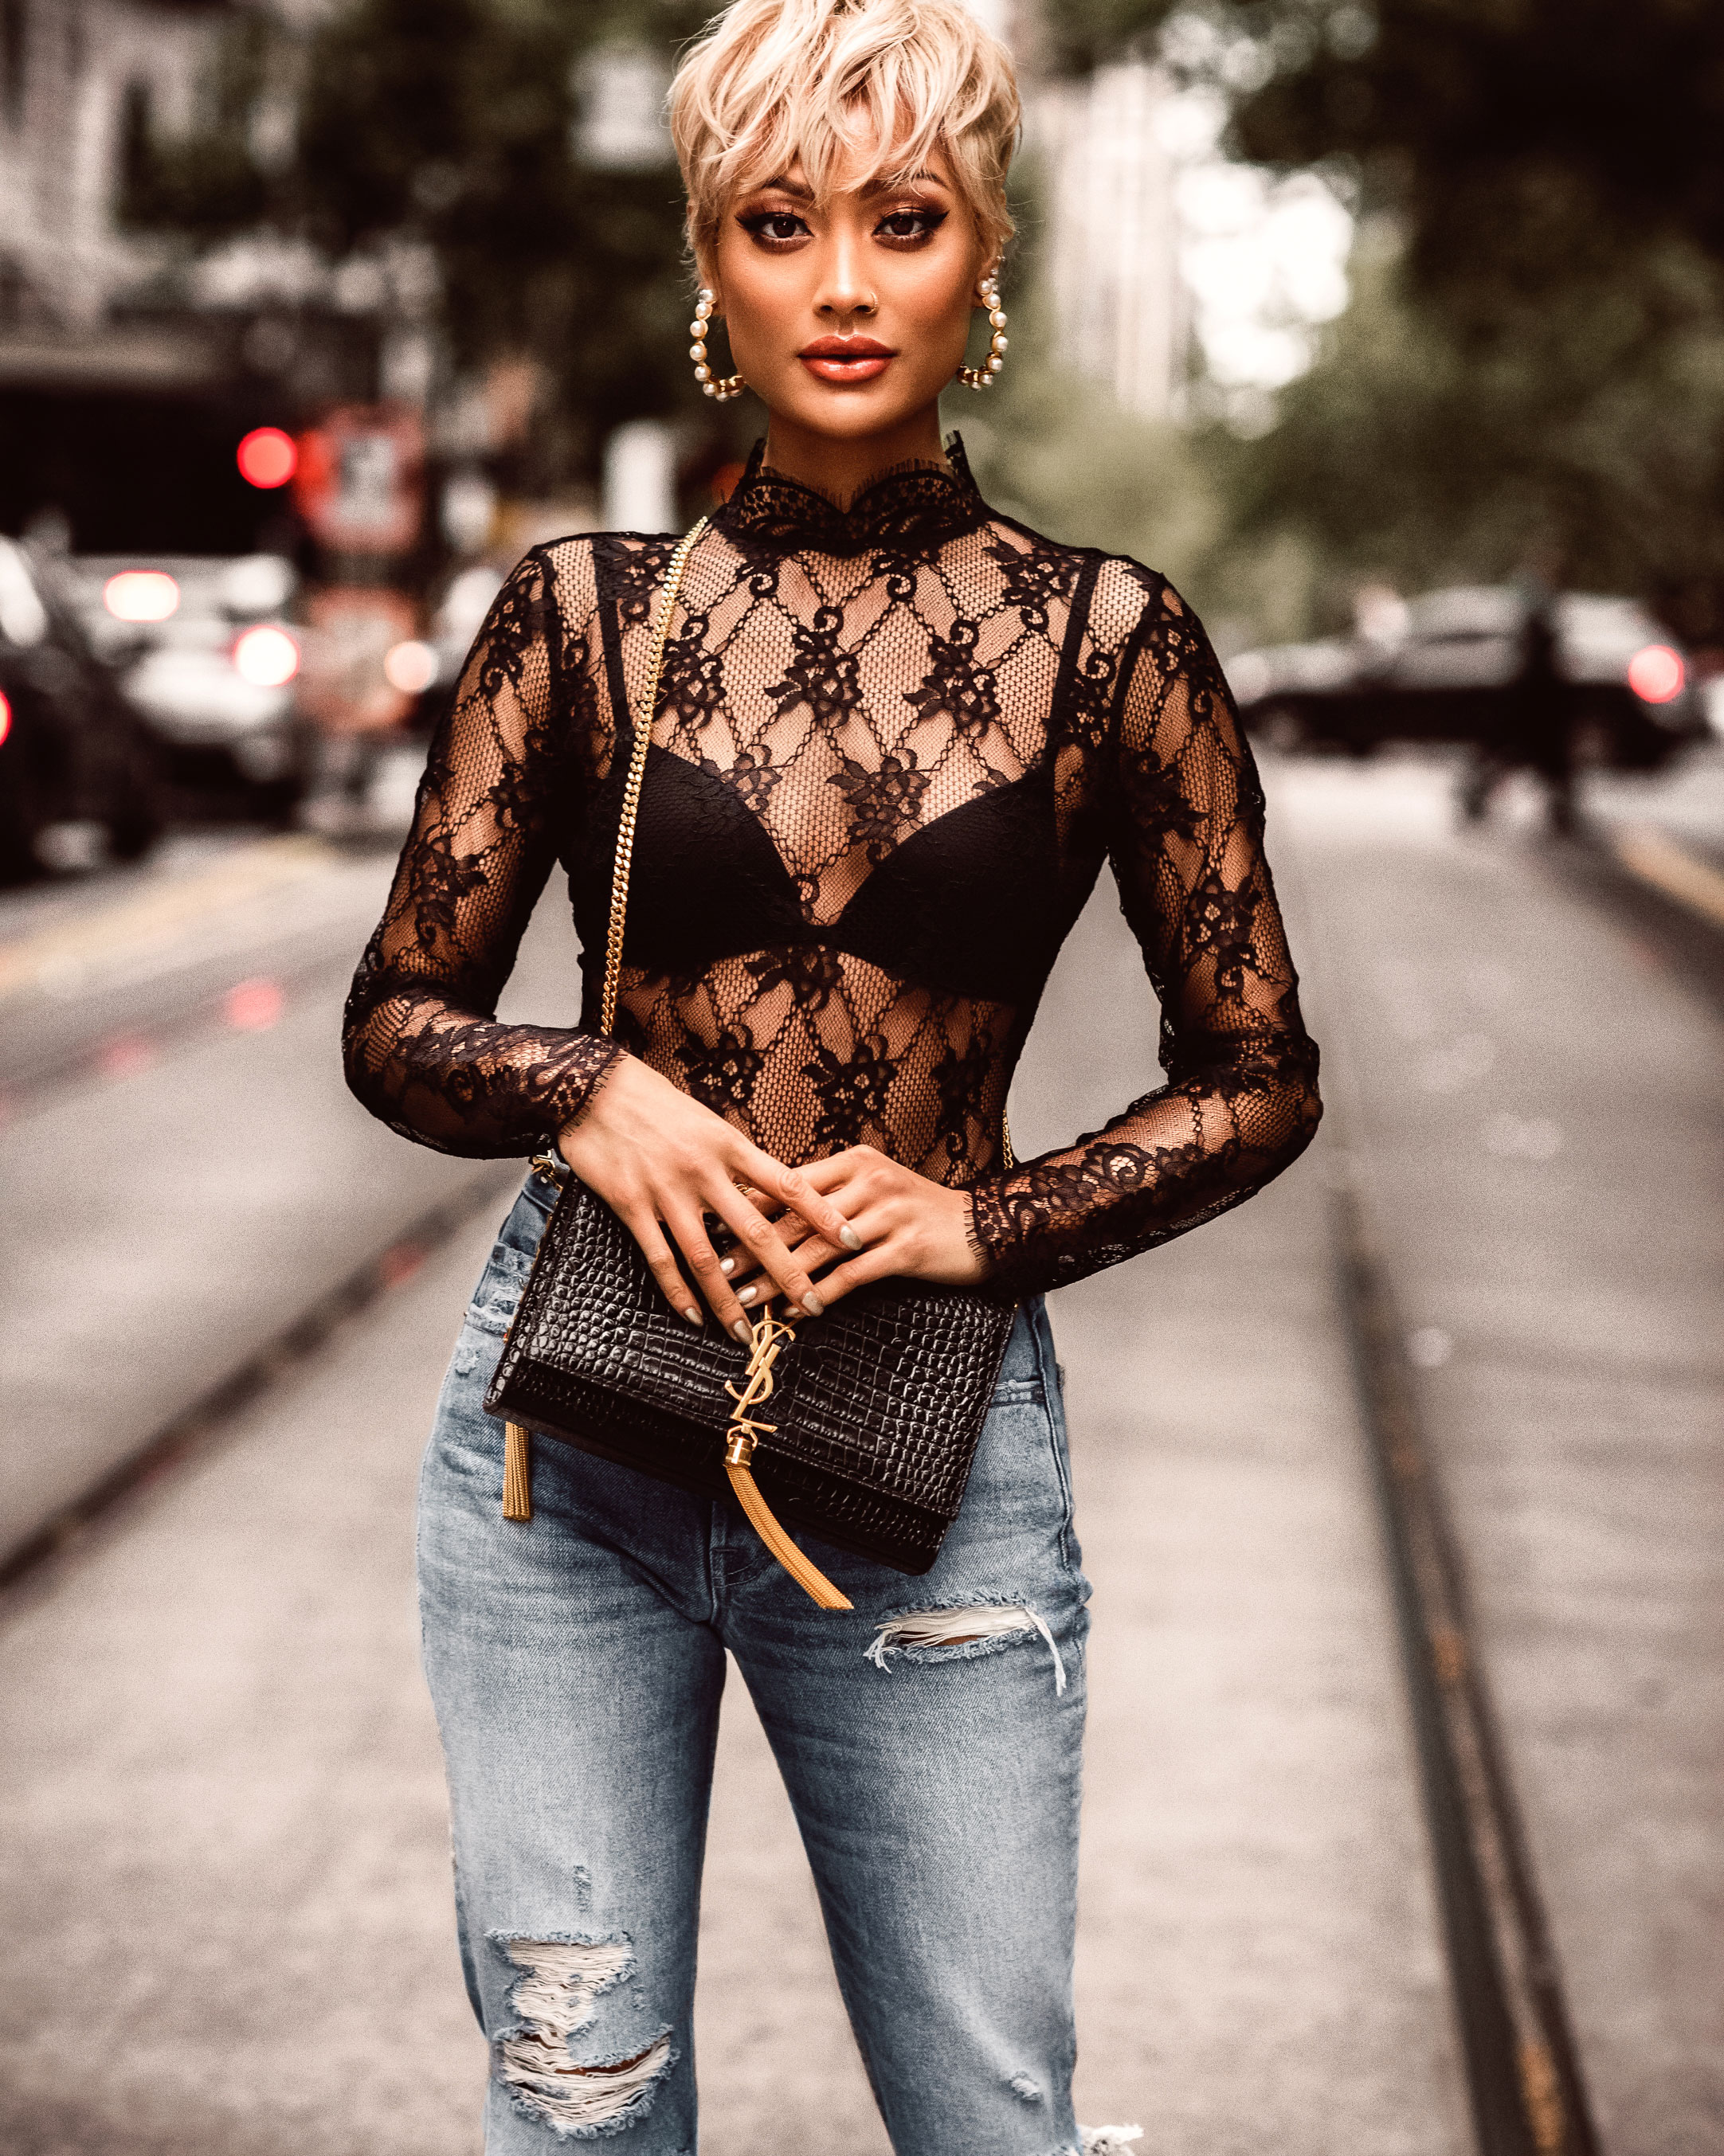 Micah-Gianneli-Australian-Melbourne-Fashion-Blogger-Influencer-Photography-Street-Style-Vogue-Editorial-Luisaviaroma-YSL-Saint-Laurent-Opyum-Kate-Bag-Revolve-NBD-Grlfrnd-Designer-Luxury